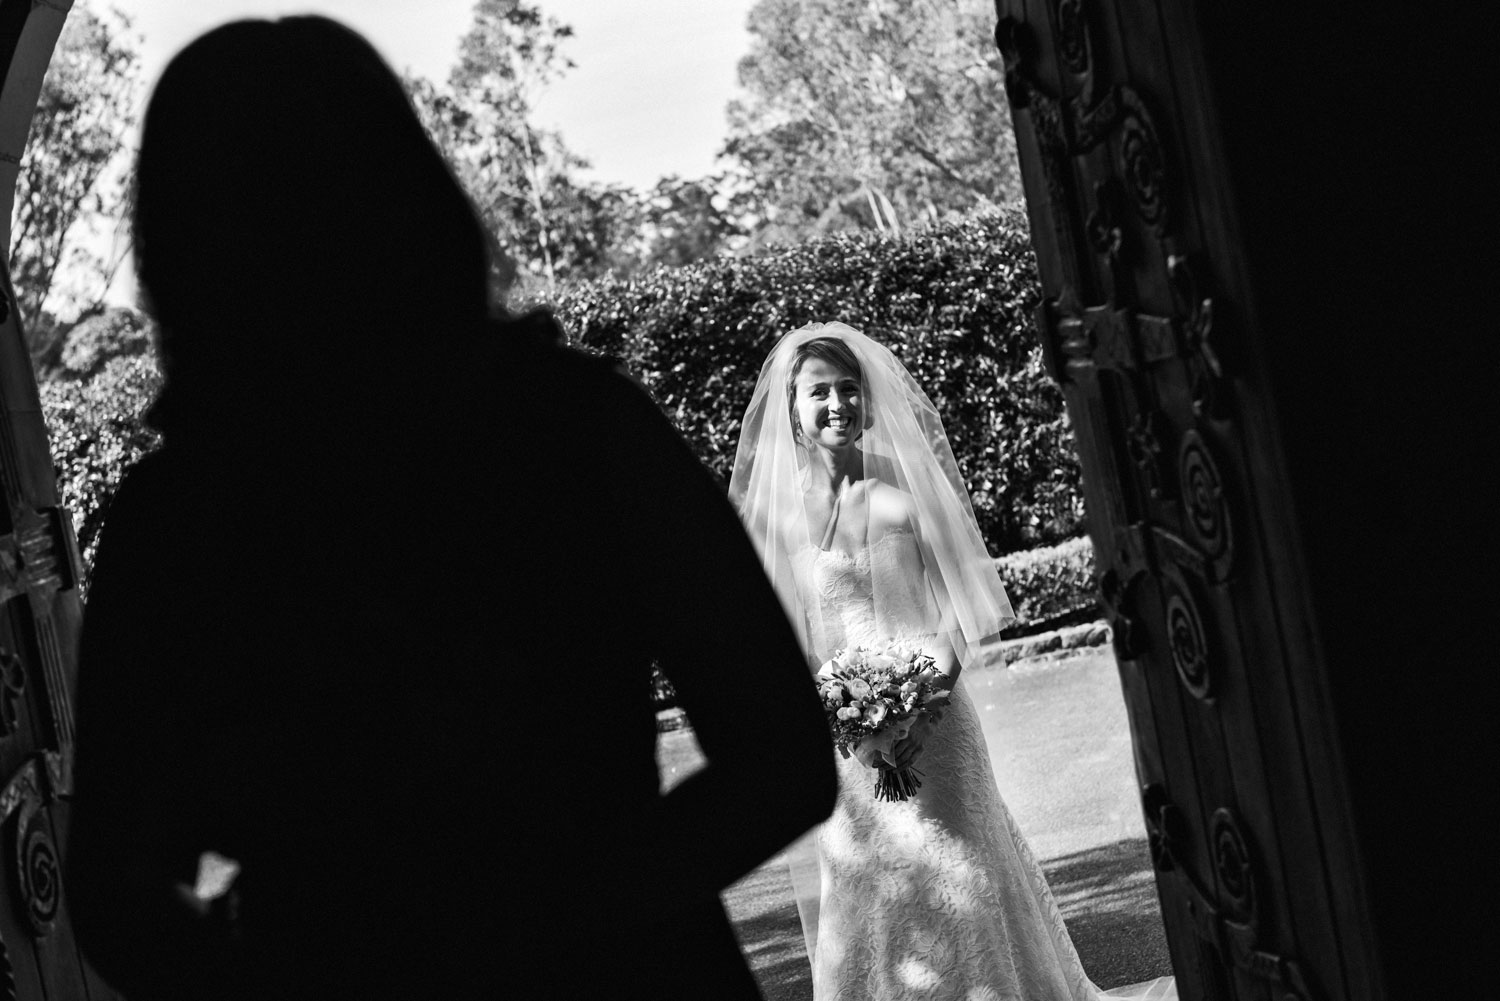 A delighted bride about to enter the King's School Chapel, Parramatta